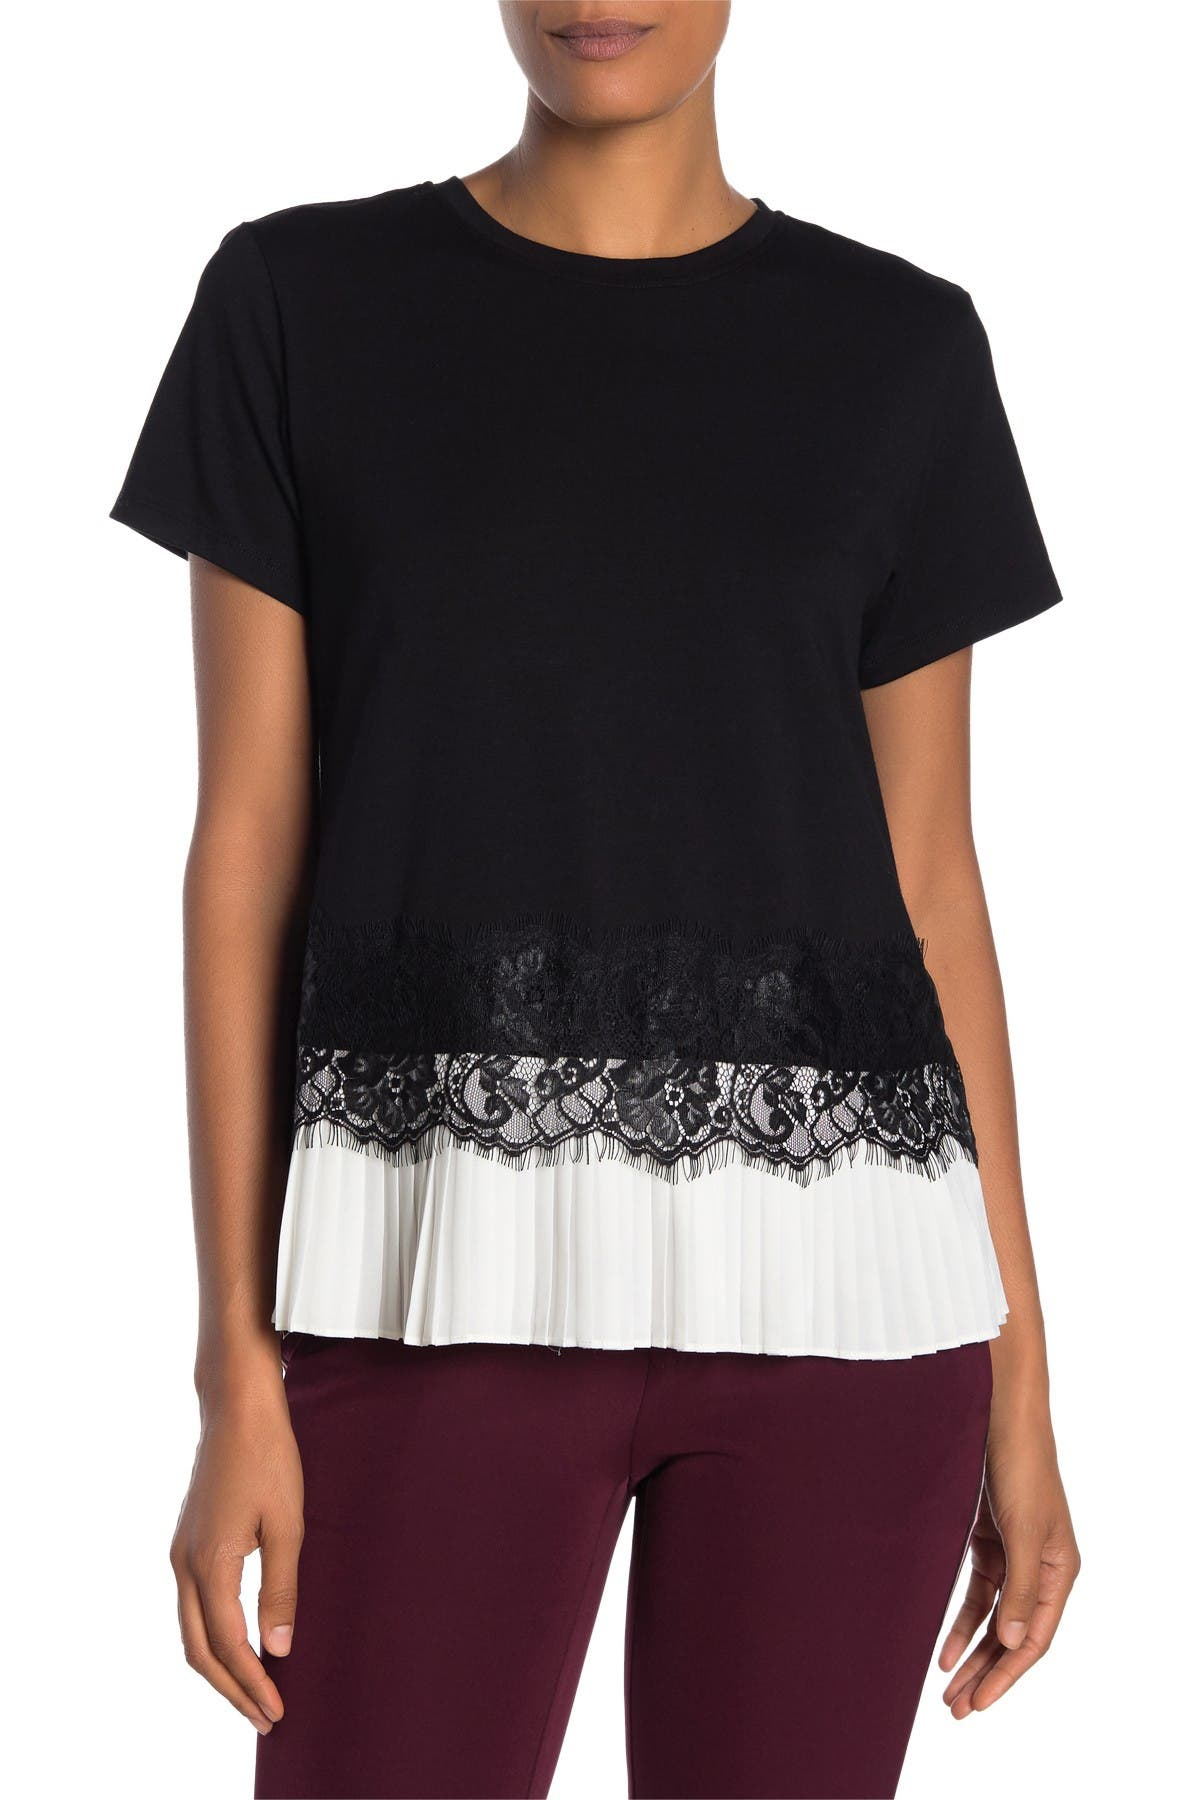 Image of Laundry By Shelli Segal Pleated Lace Trim T-Shirt